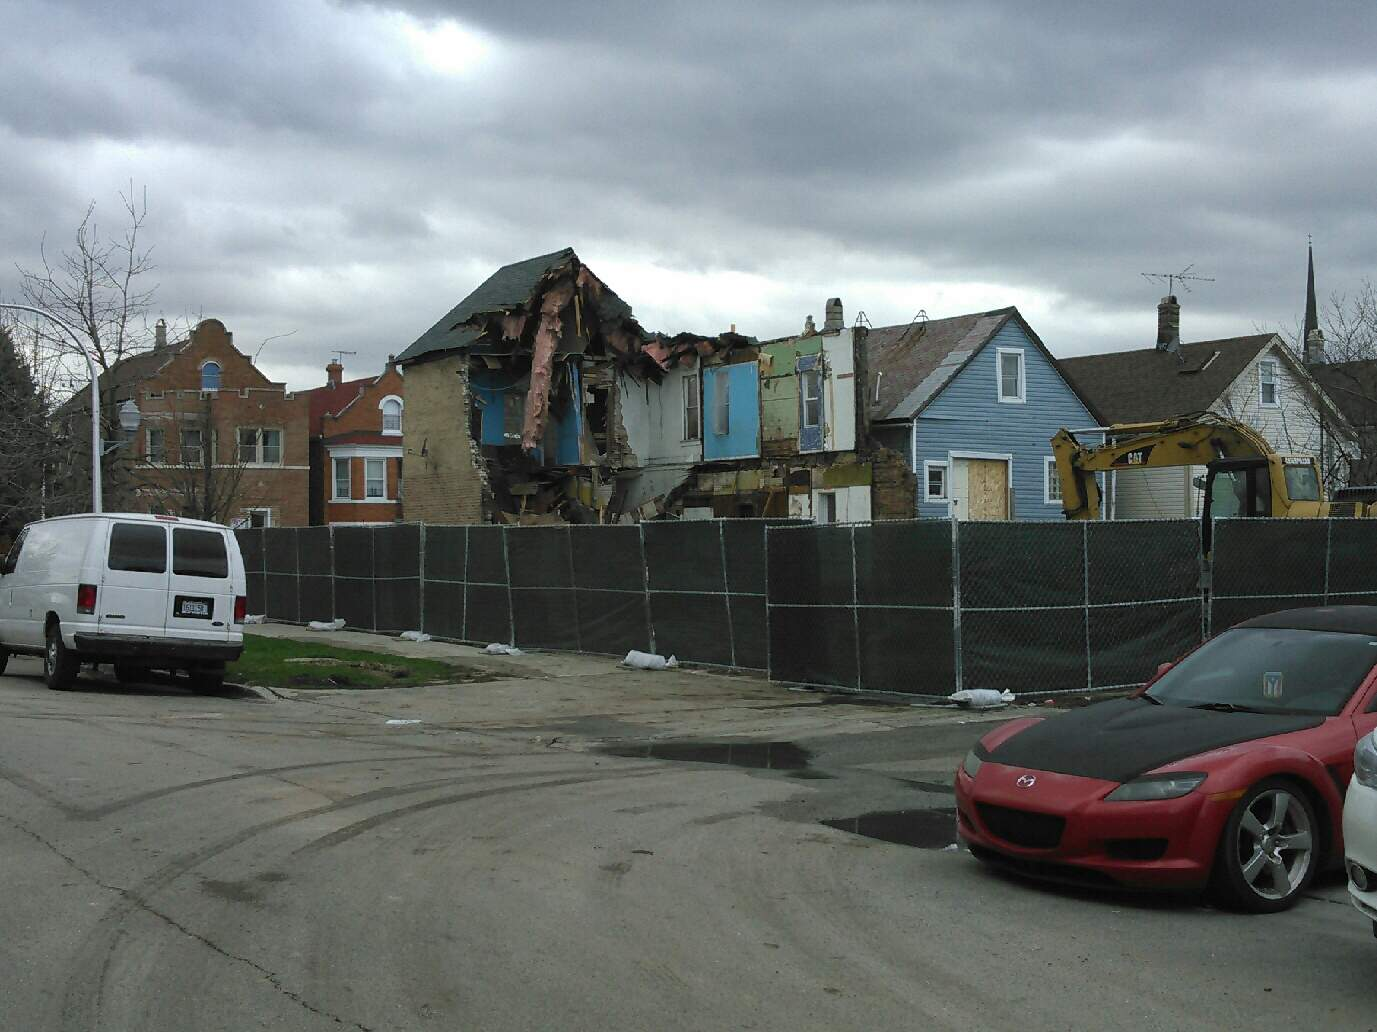 Questioner Robert Beedle wondered if there are any health impacts associated with the demolition of old homes. He became concerned after walking past a demolition in his McKinley Park neighborhood (Courtesy Robert Beedle).